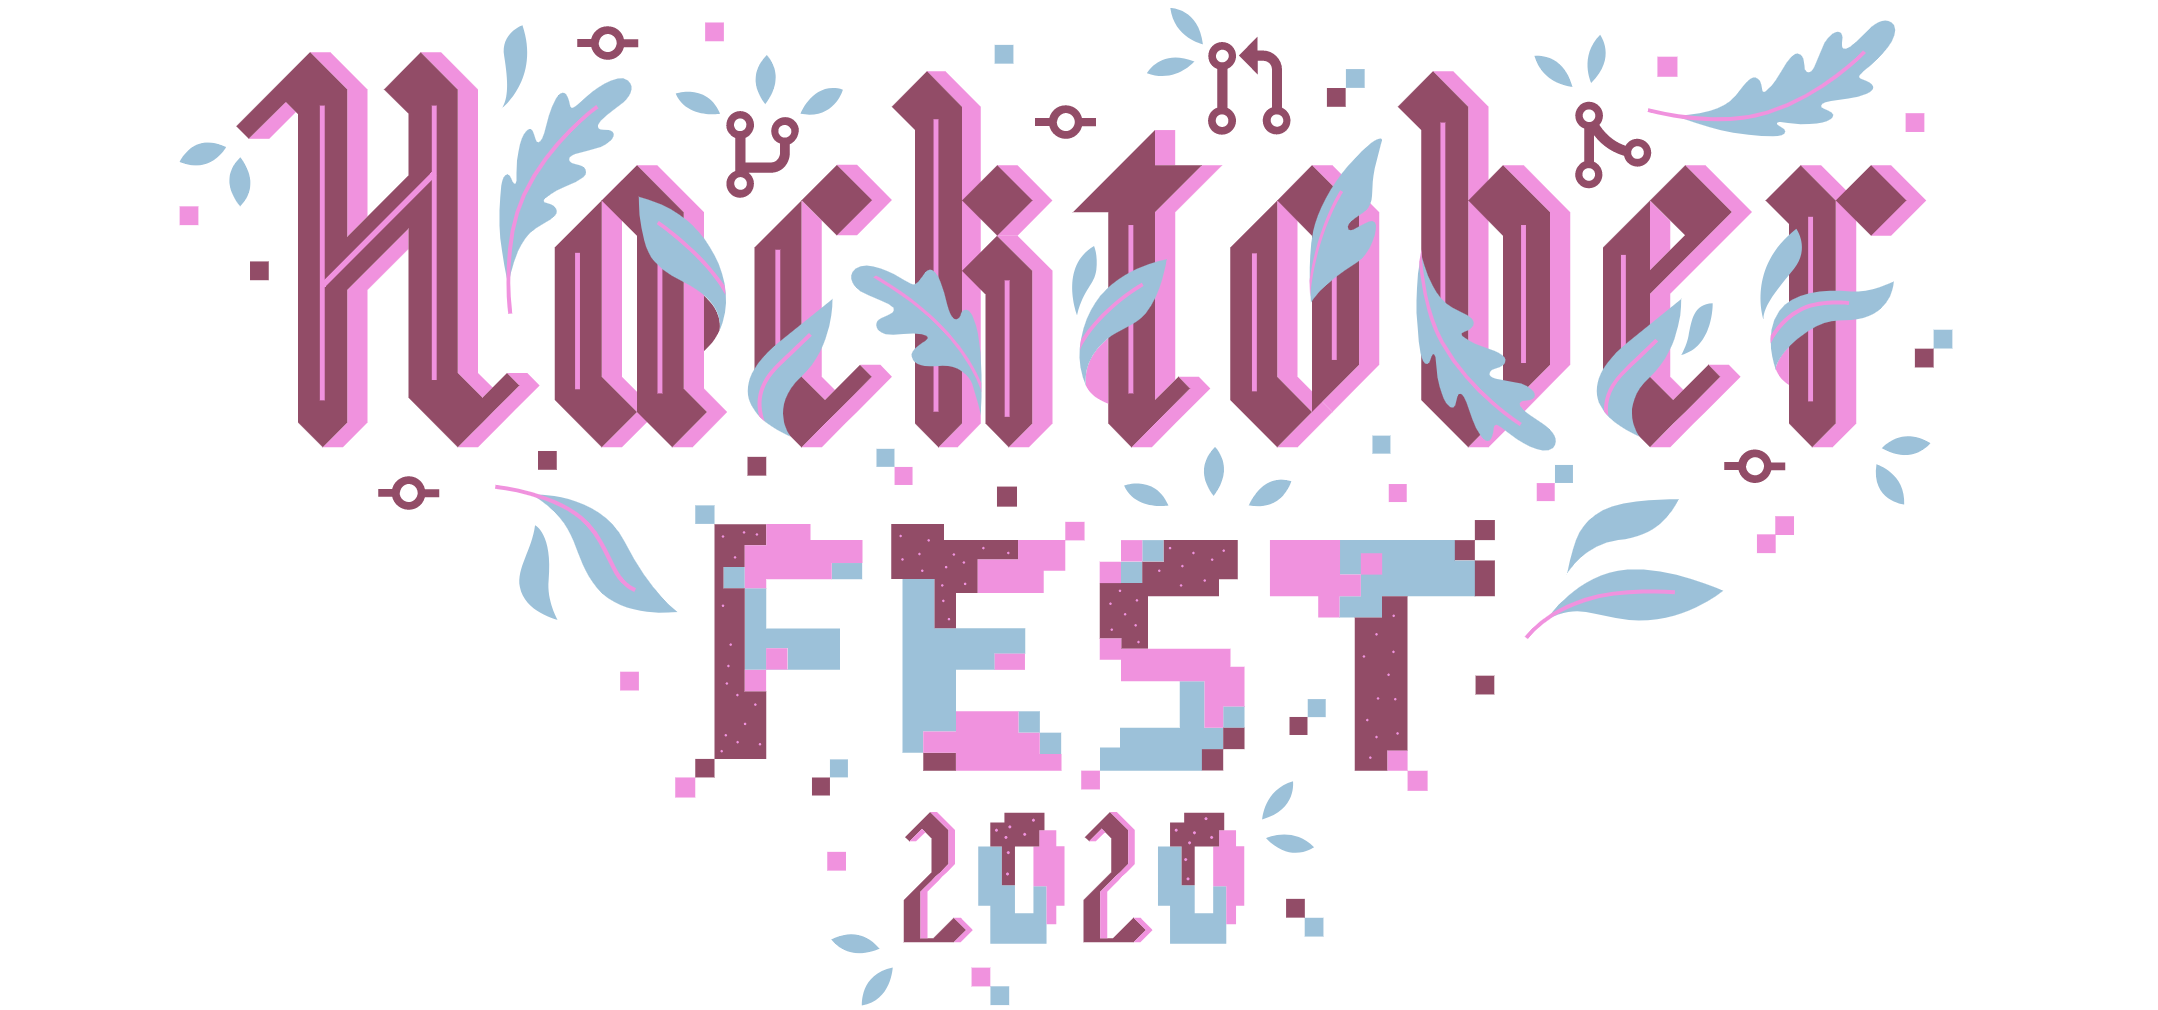 Pink and blue graphic for Hacktoberfest 2020